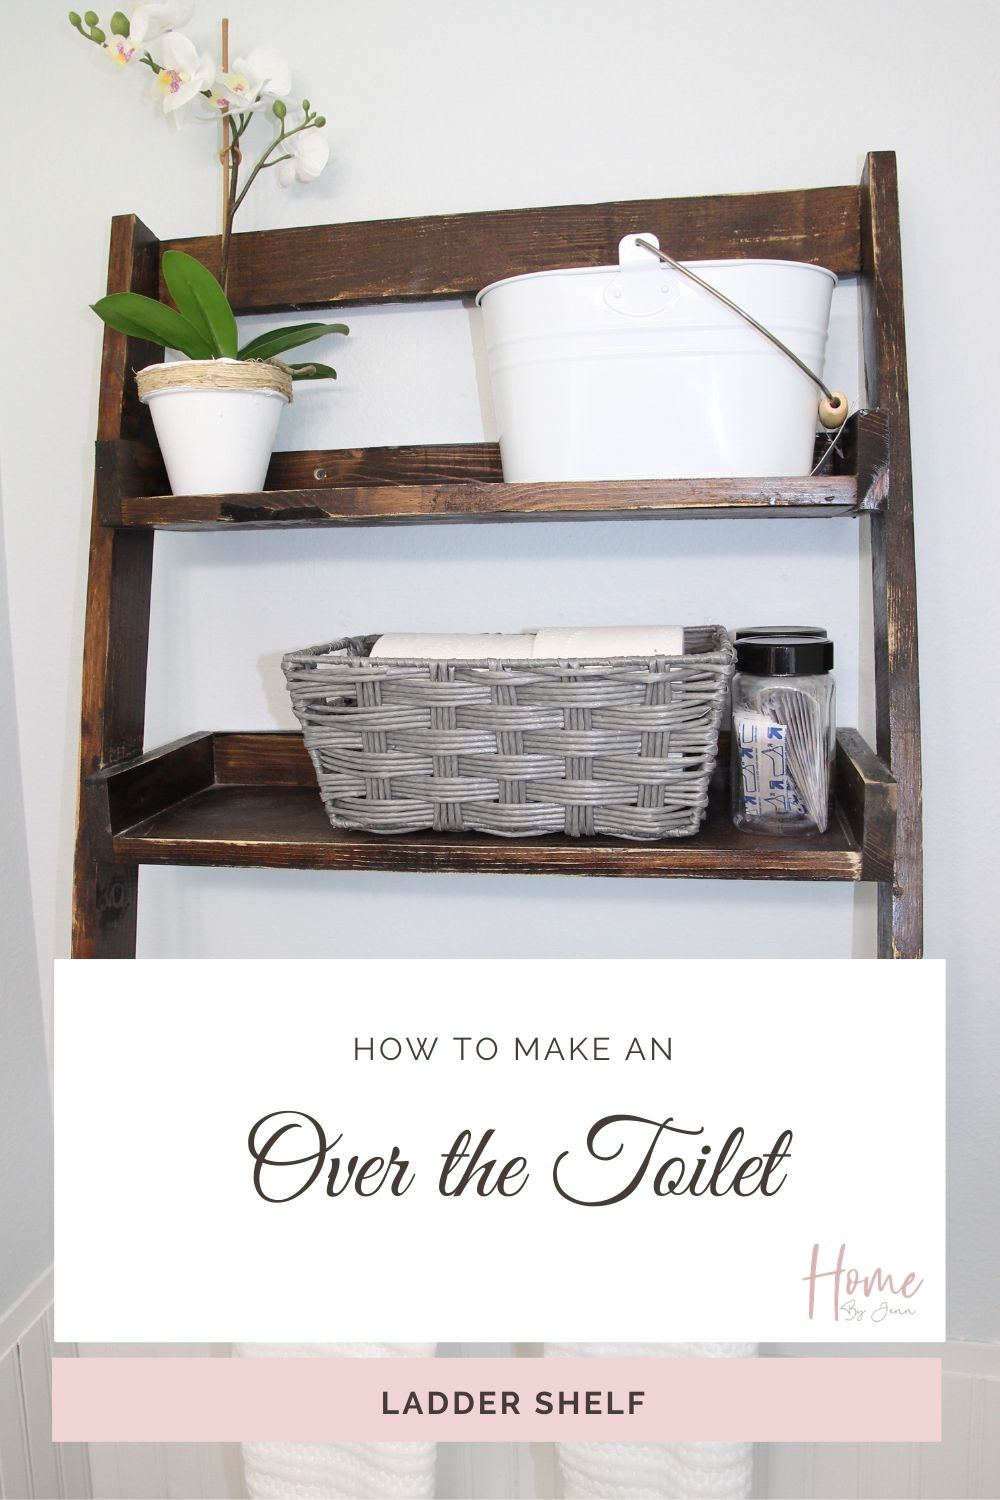 Perfect beginner diy woodworking project. Add much needed storage to your small bathroom with this over the toilet shelf. #diy #diyproject #woodworking #smallspace #smallbathroom #bathroom #bathroomorganization #smallbathroomorganization